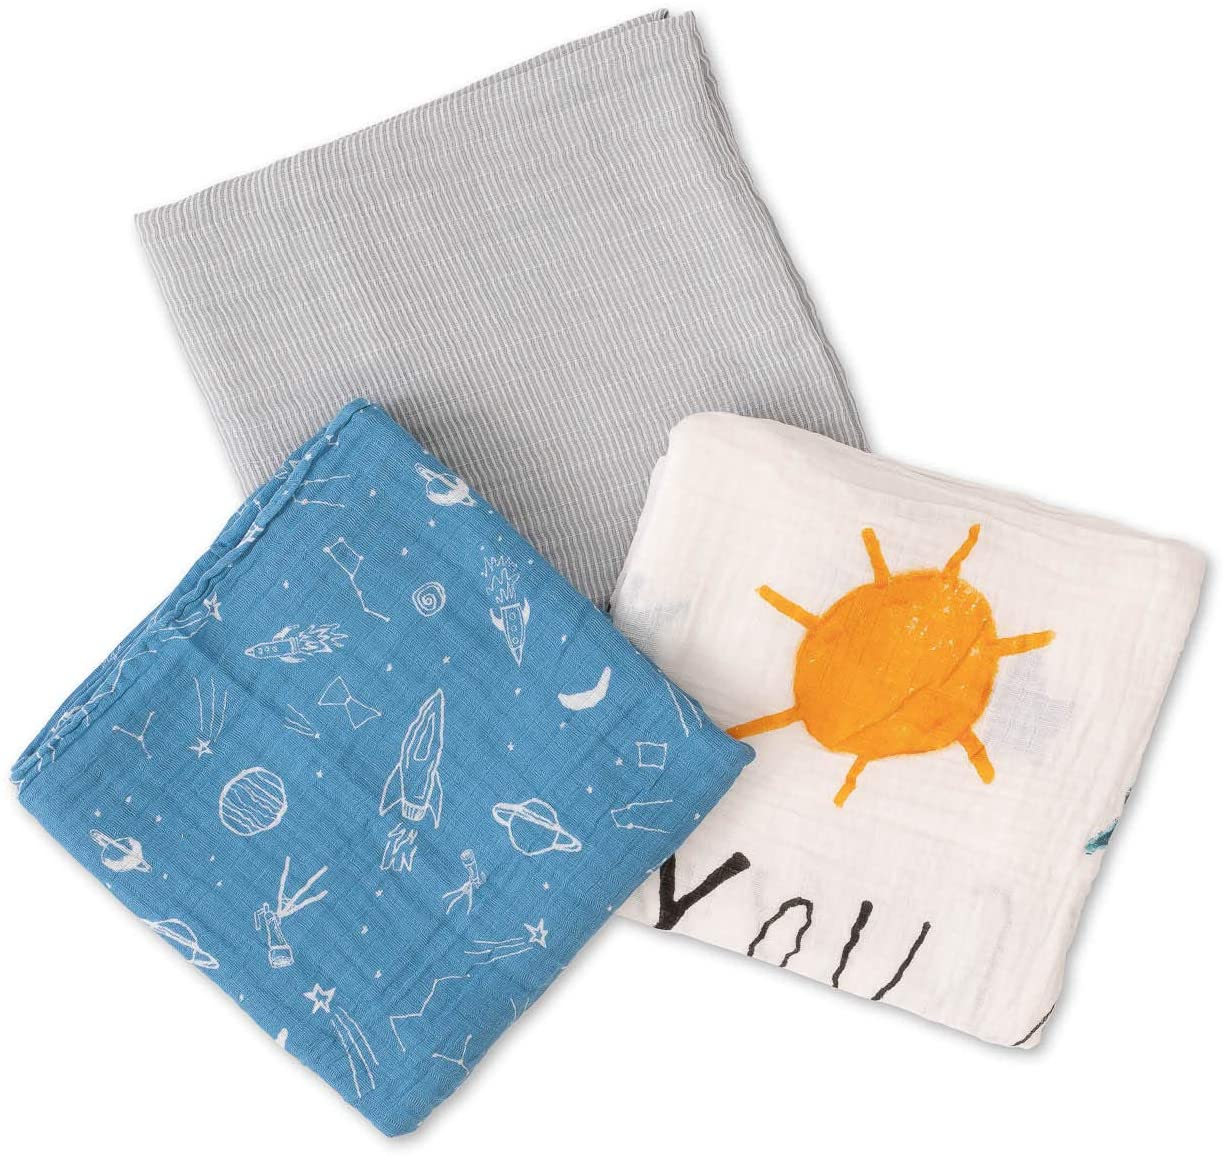 Red Rover Kids Breathable Cotton Muslin Swaddle 3 Pack (Sun Moon Stars)